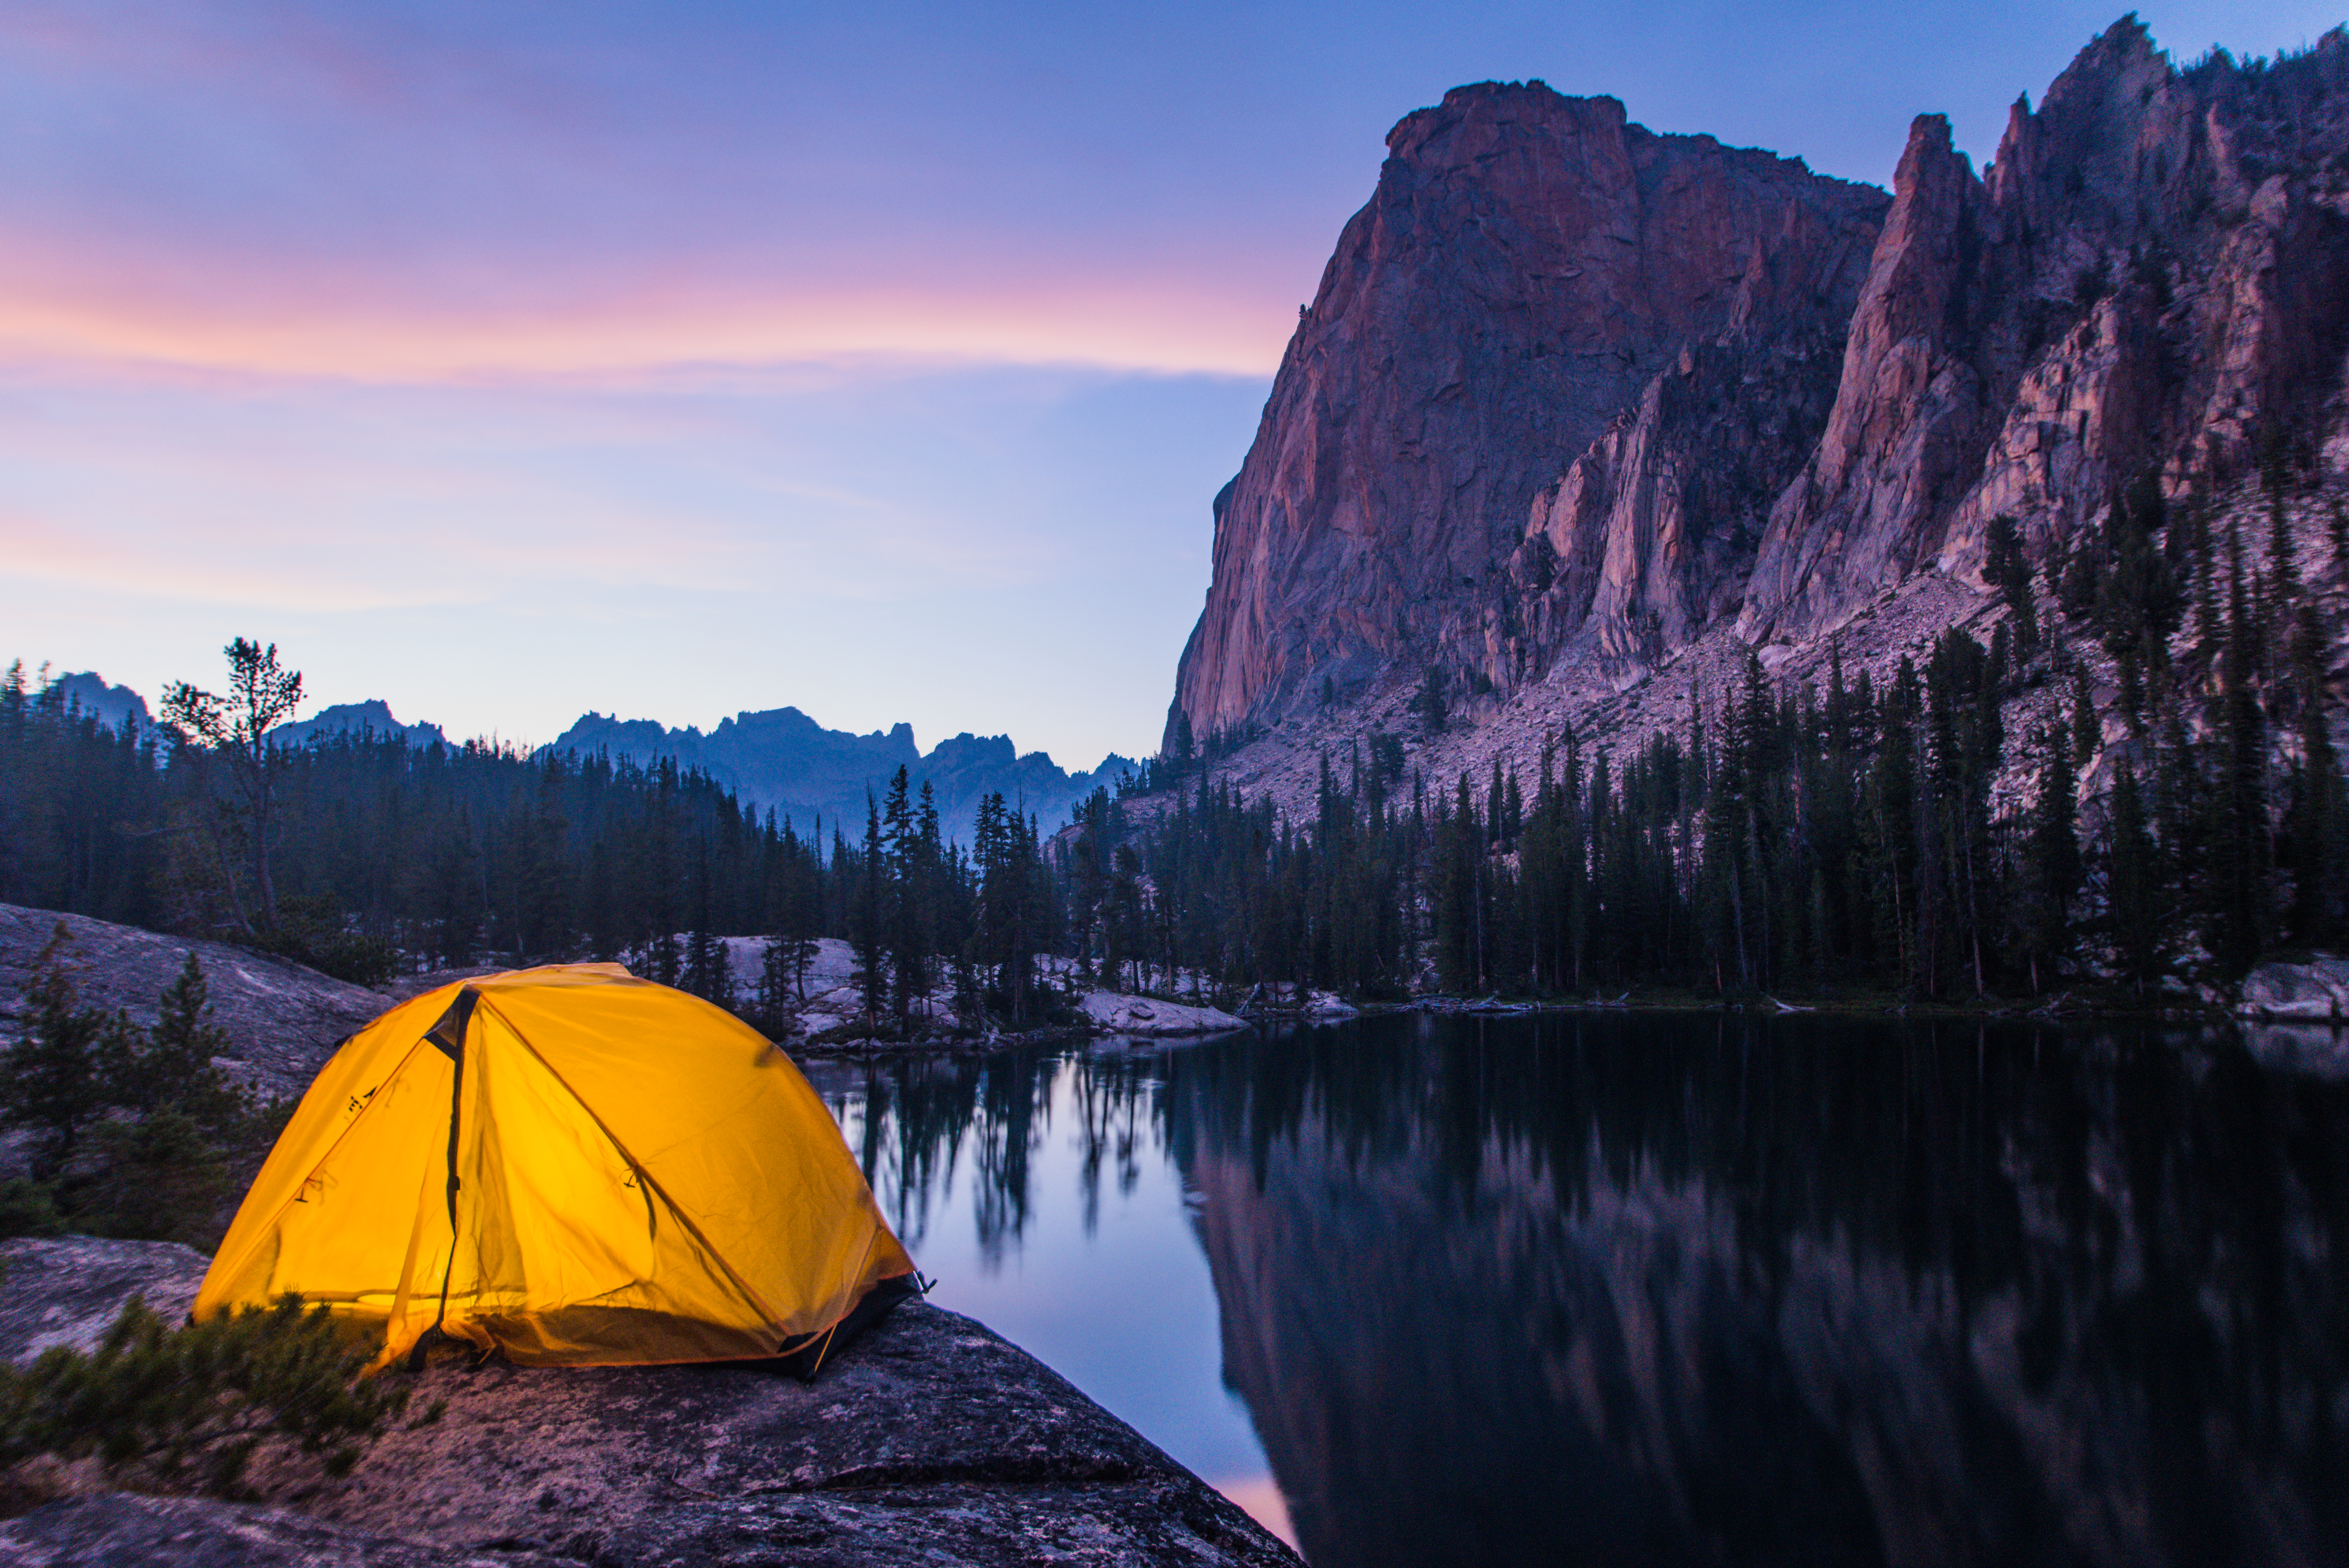 A lit tent beneath a mountainside at night.